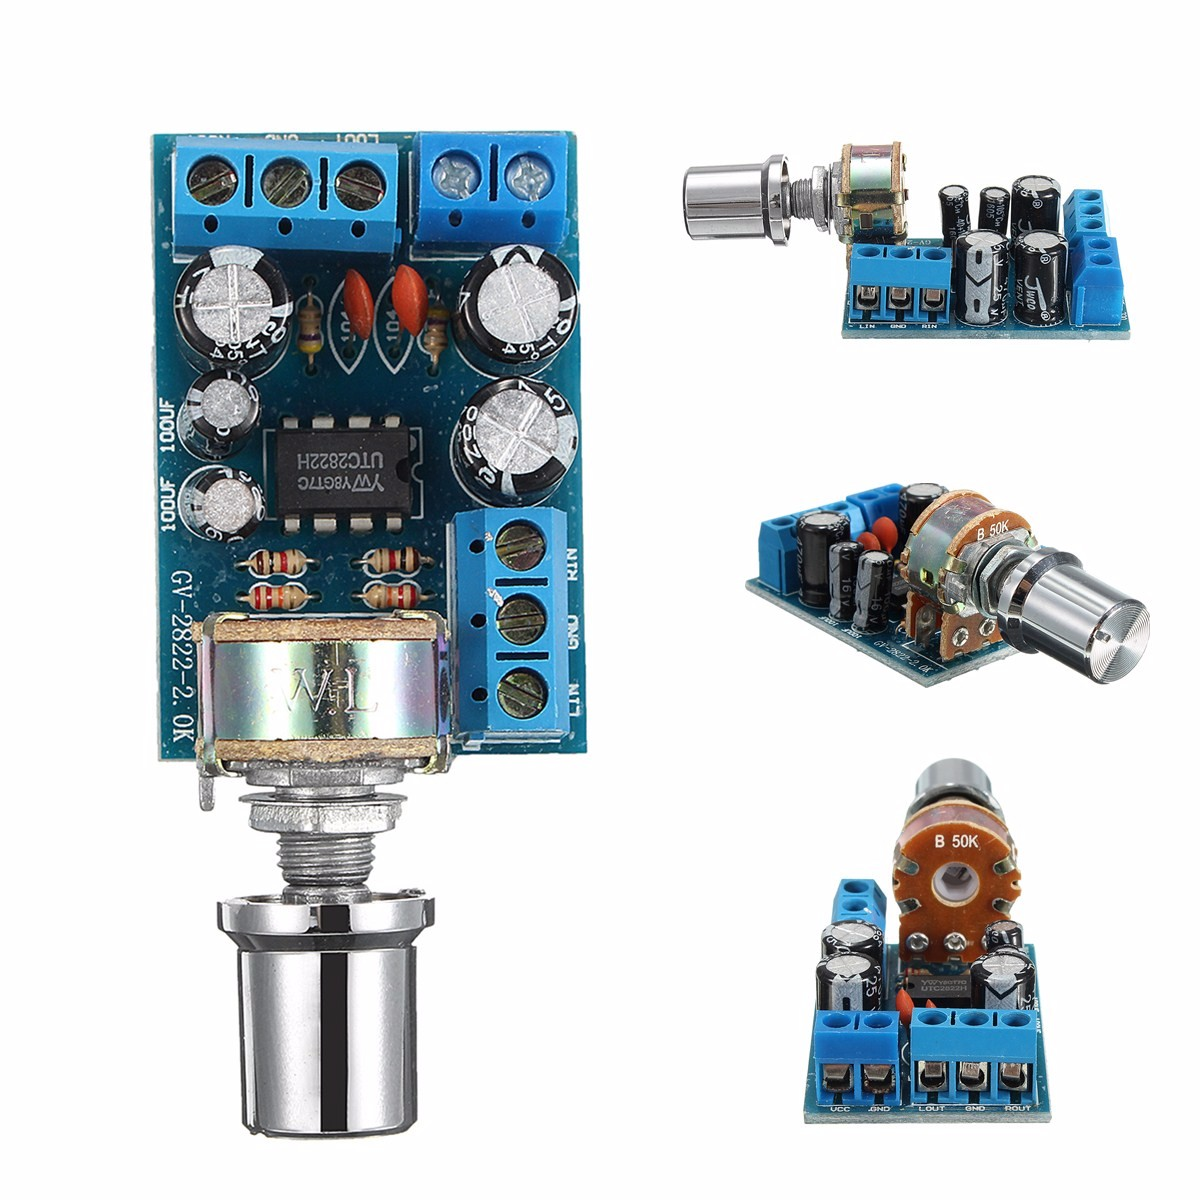 LEORY TDA2822M 1W*2 Dual Channel Audio Amplifier Stereo Module Board Volume Control DC 1.8-12V Operational Amplifier Chips